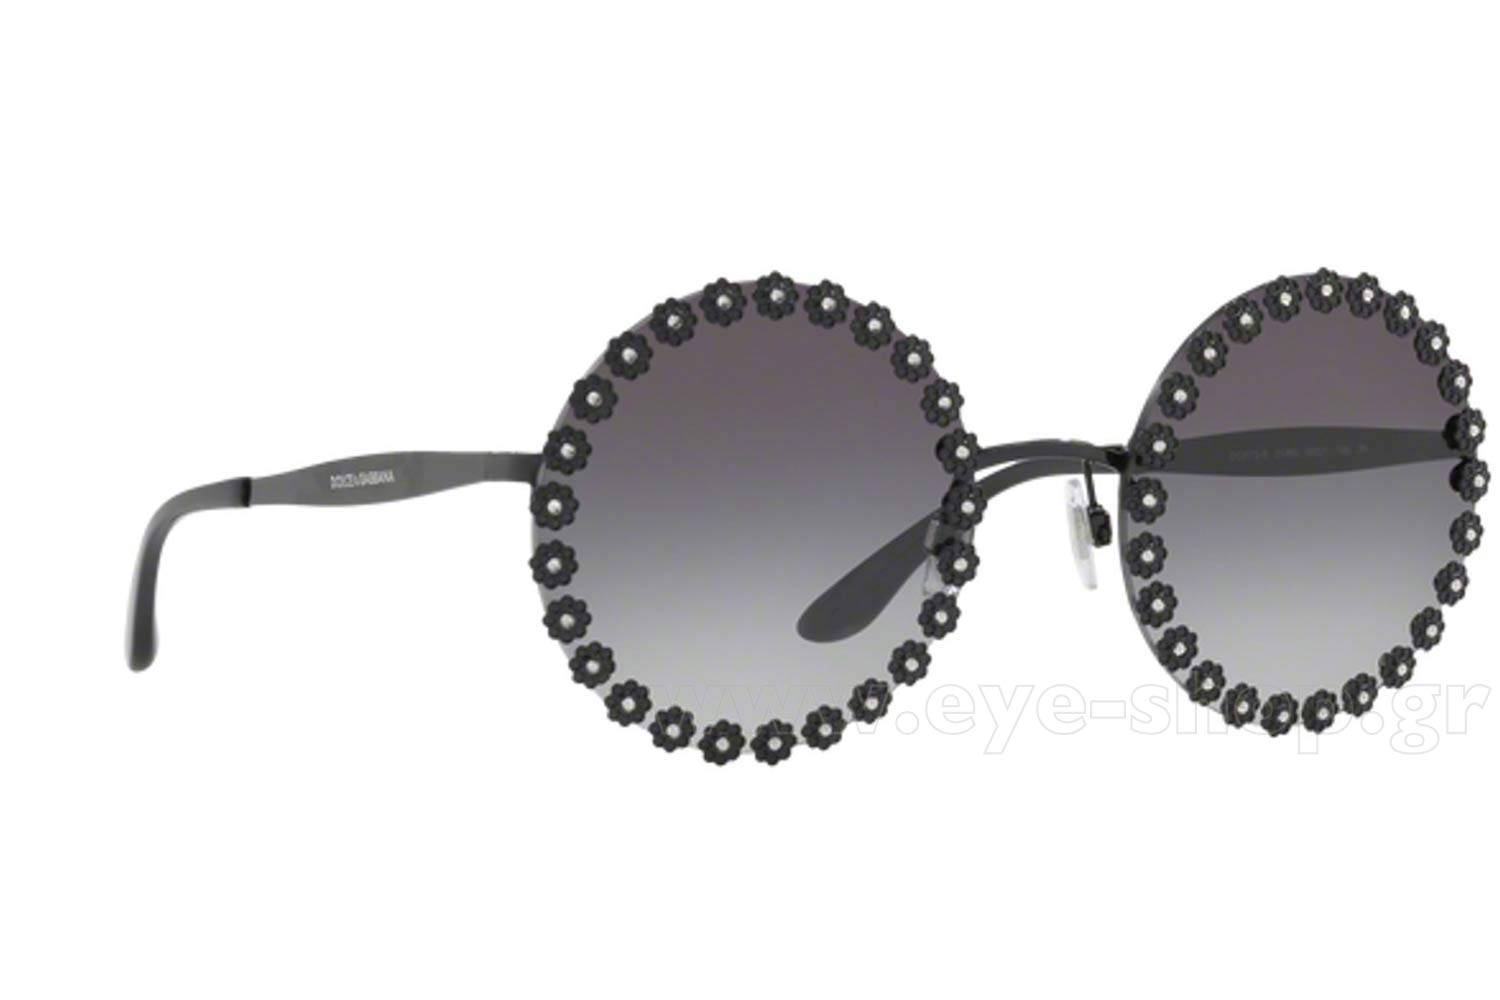 519ad7281c91 DOLCE GABBANA 2173B 01/8G 56 | SUNGLASSES Women EyeShop